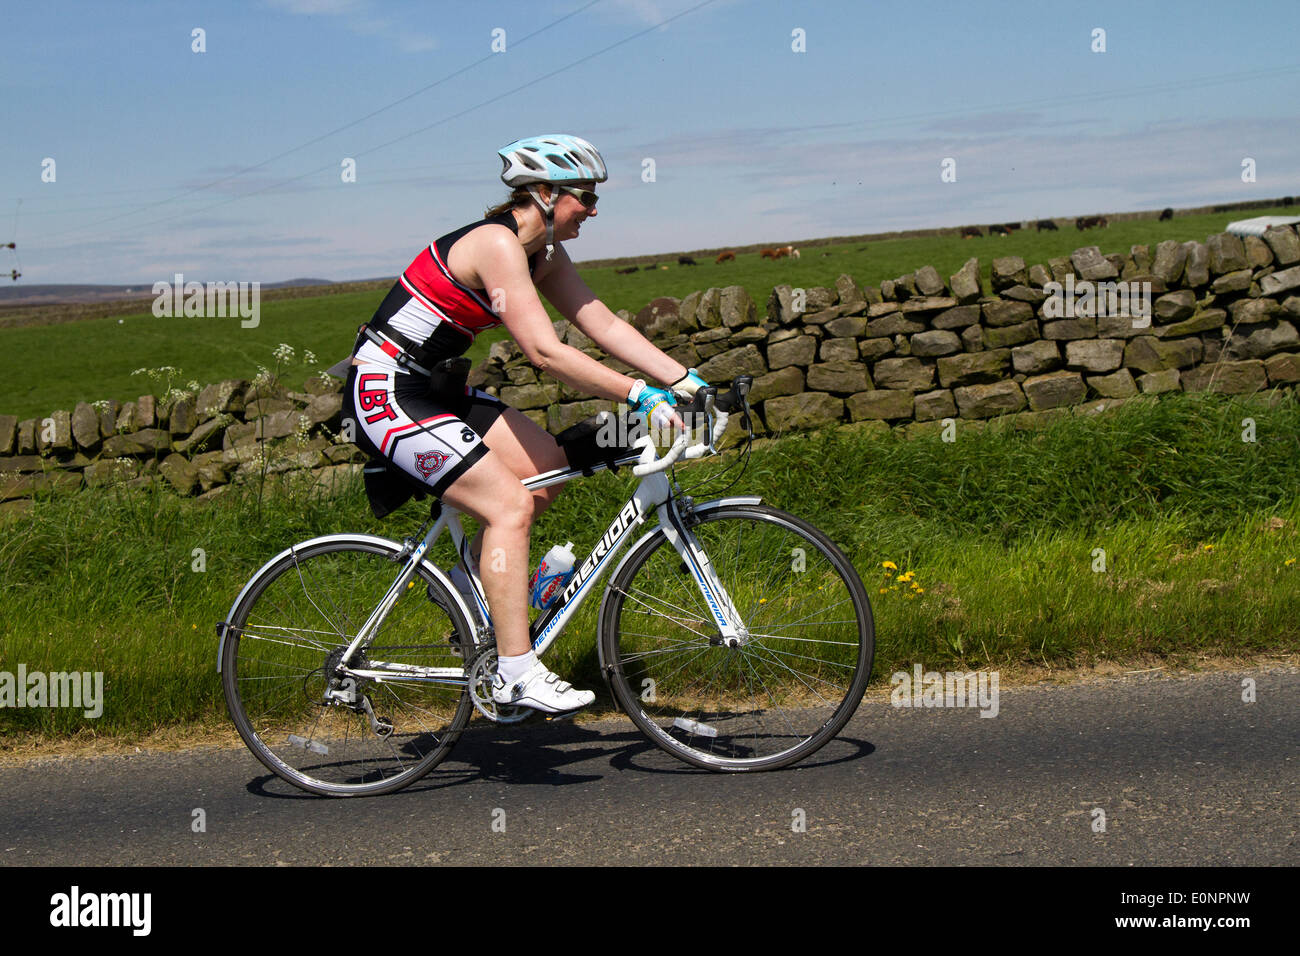 Boardman Bicycle Stock Photos & Boardman Bicycle Stock Images - Alamy